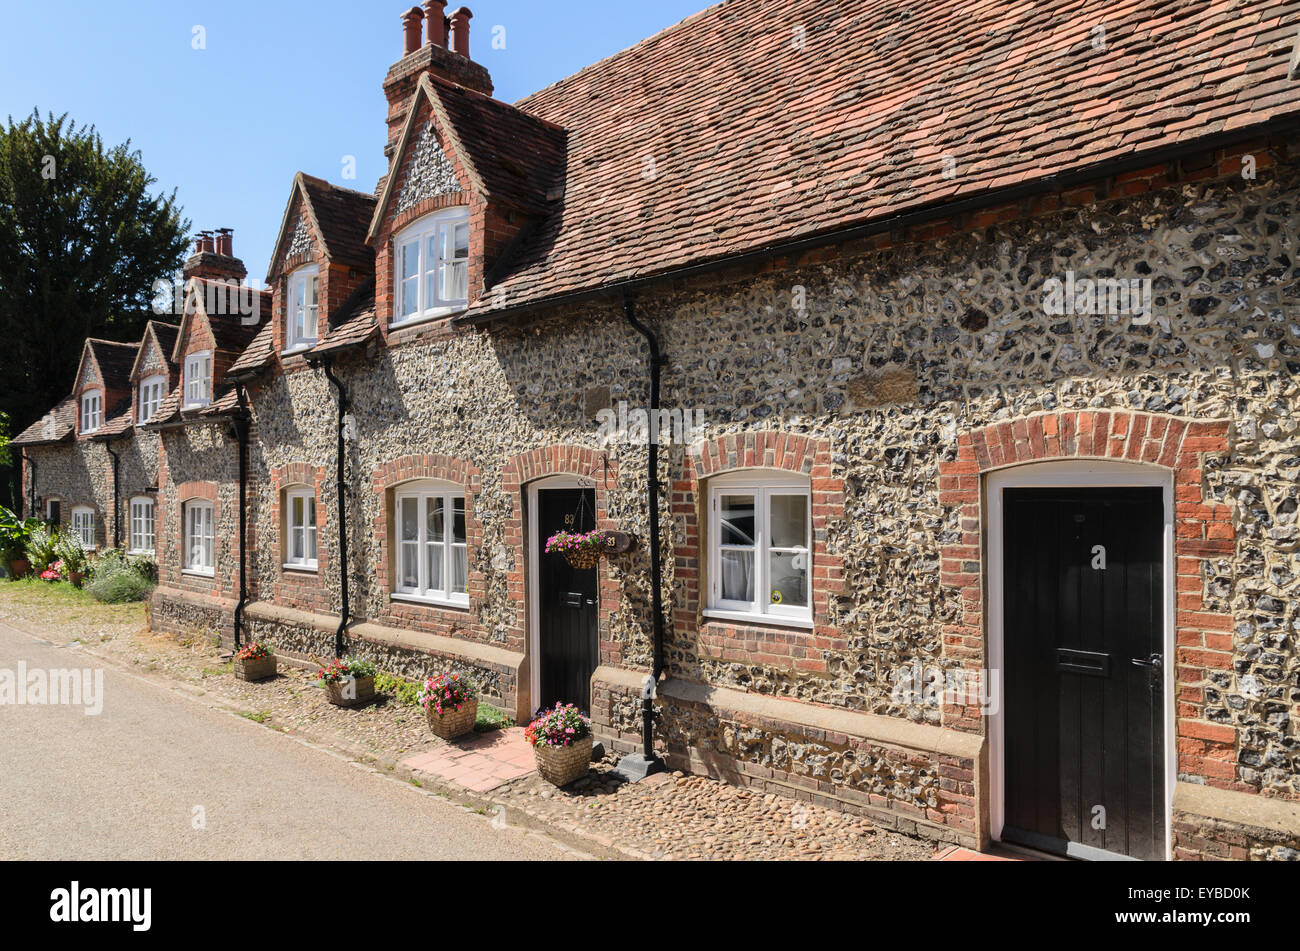 A row of cottages at Coombe Terrace, Hambleden, Buckinghamshire, England, UK. Stock Photo